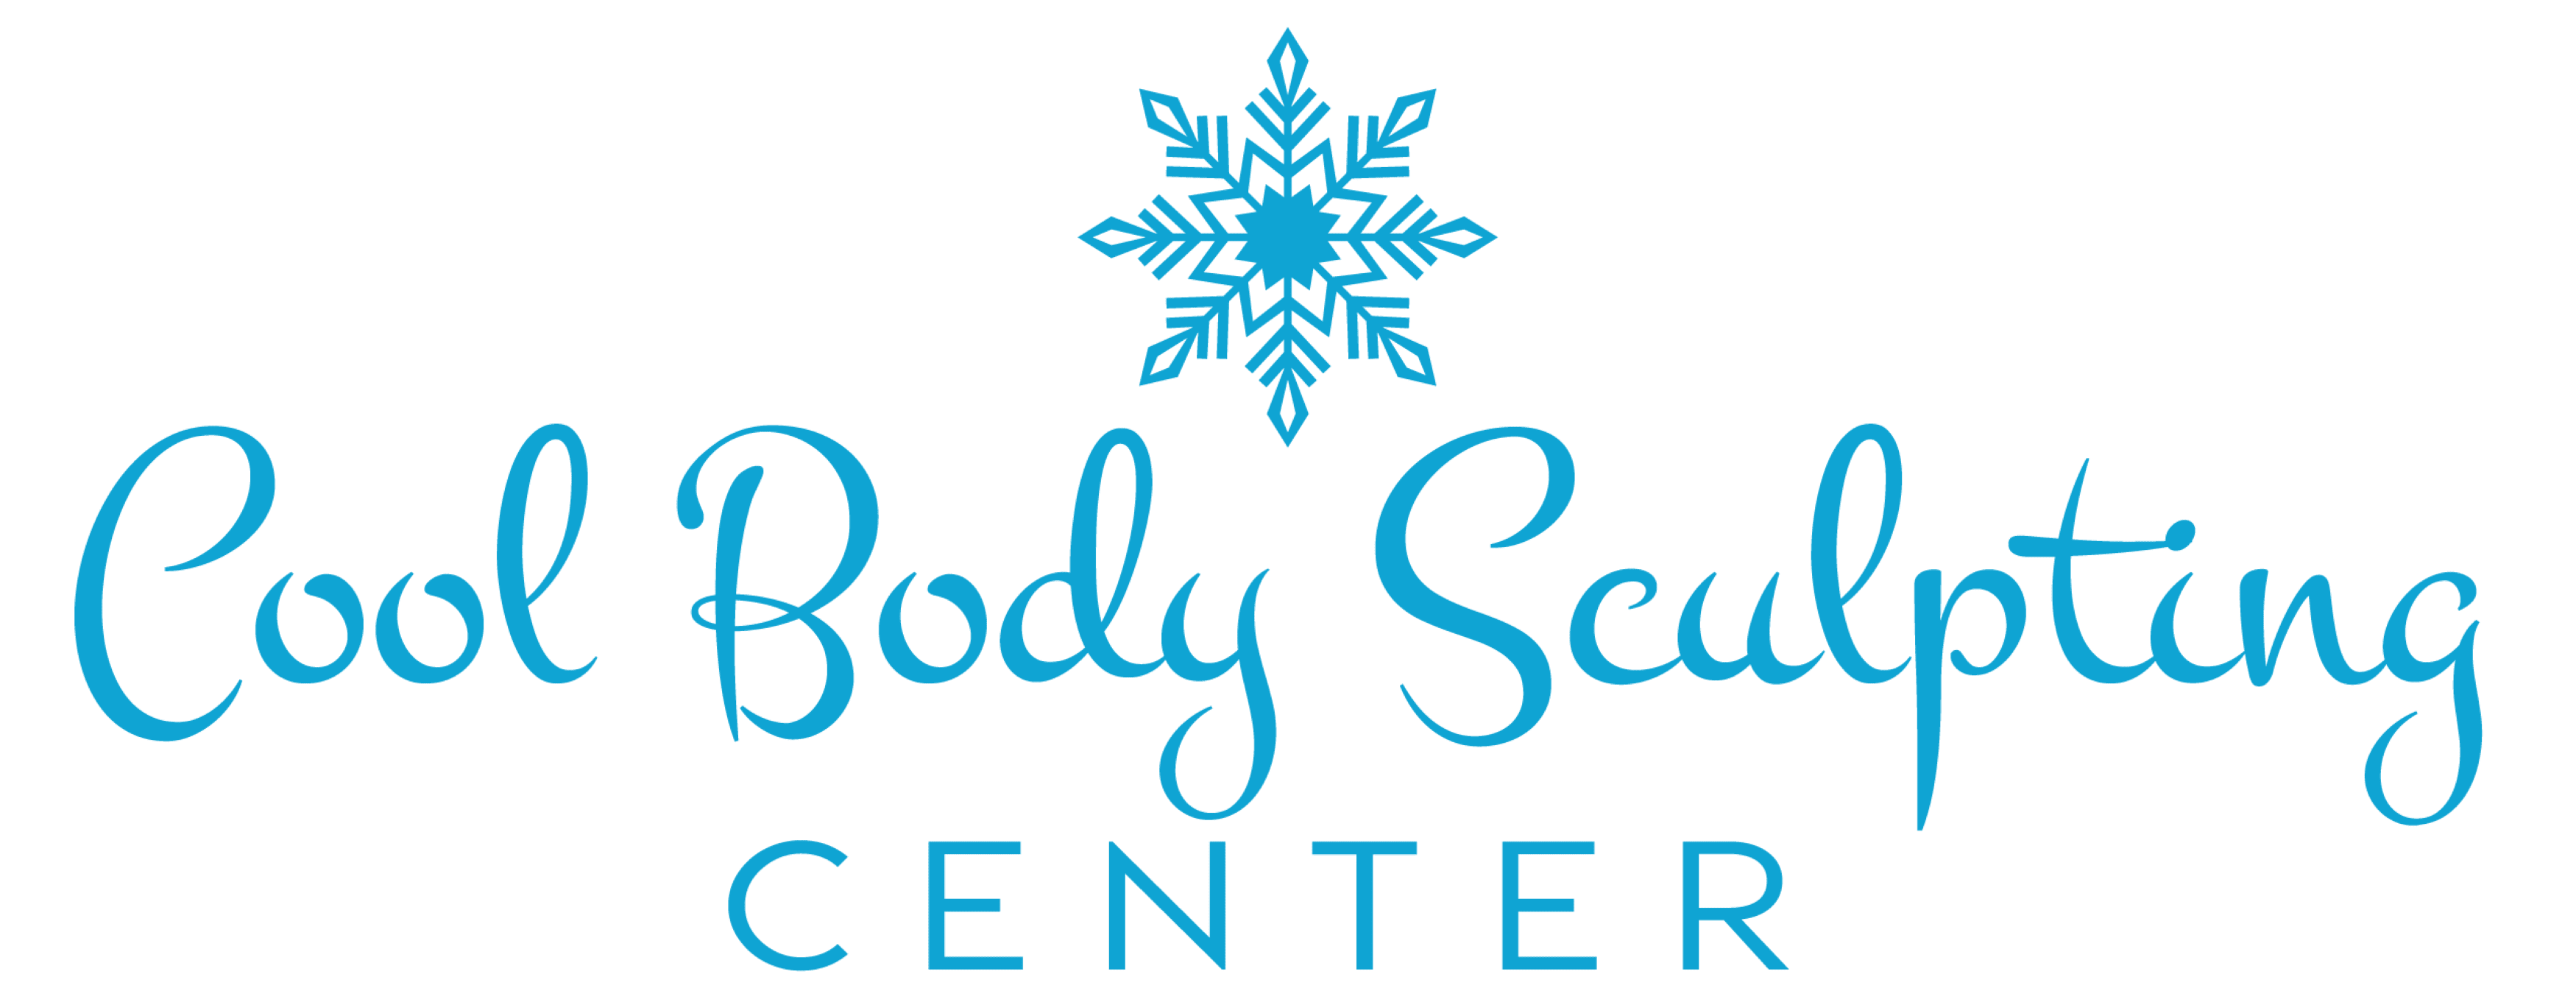 Cool Body Sculpting Center | Virginia Beach, VA